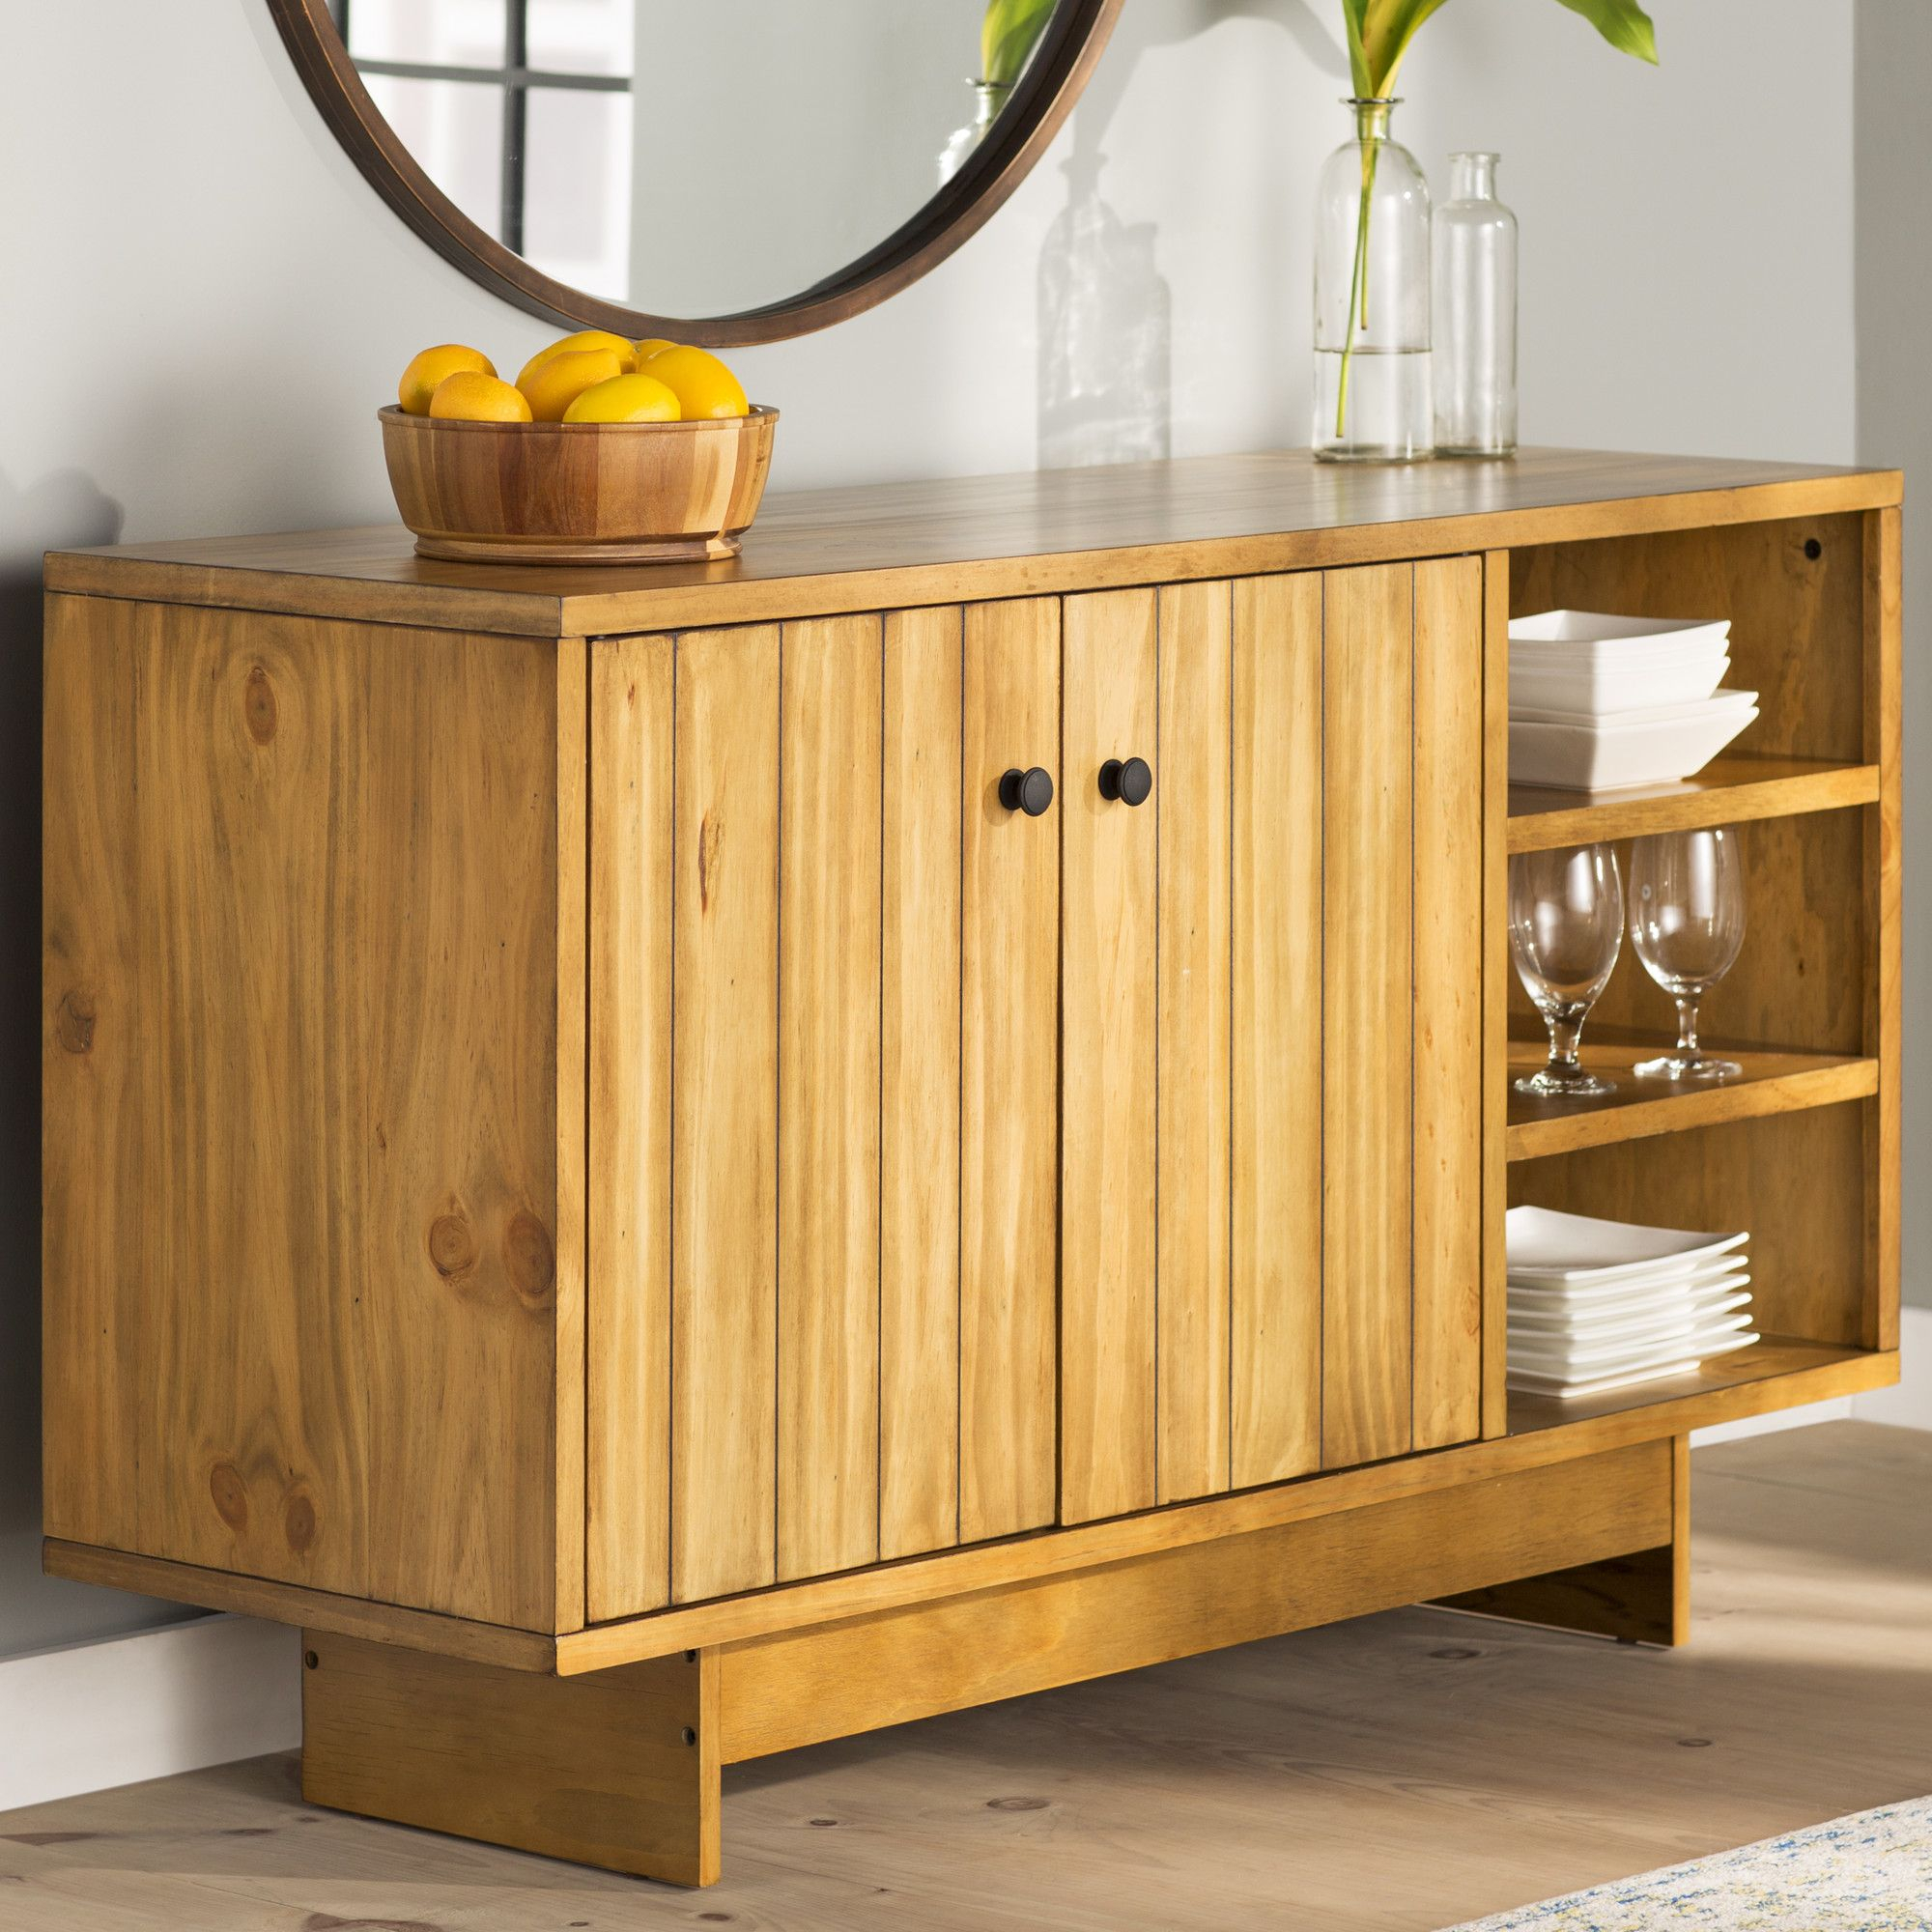 Avenal Sideboard | Products Pertaining To 2018 Remington Sideboards (#2 of 20)